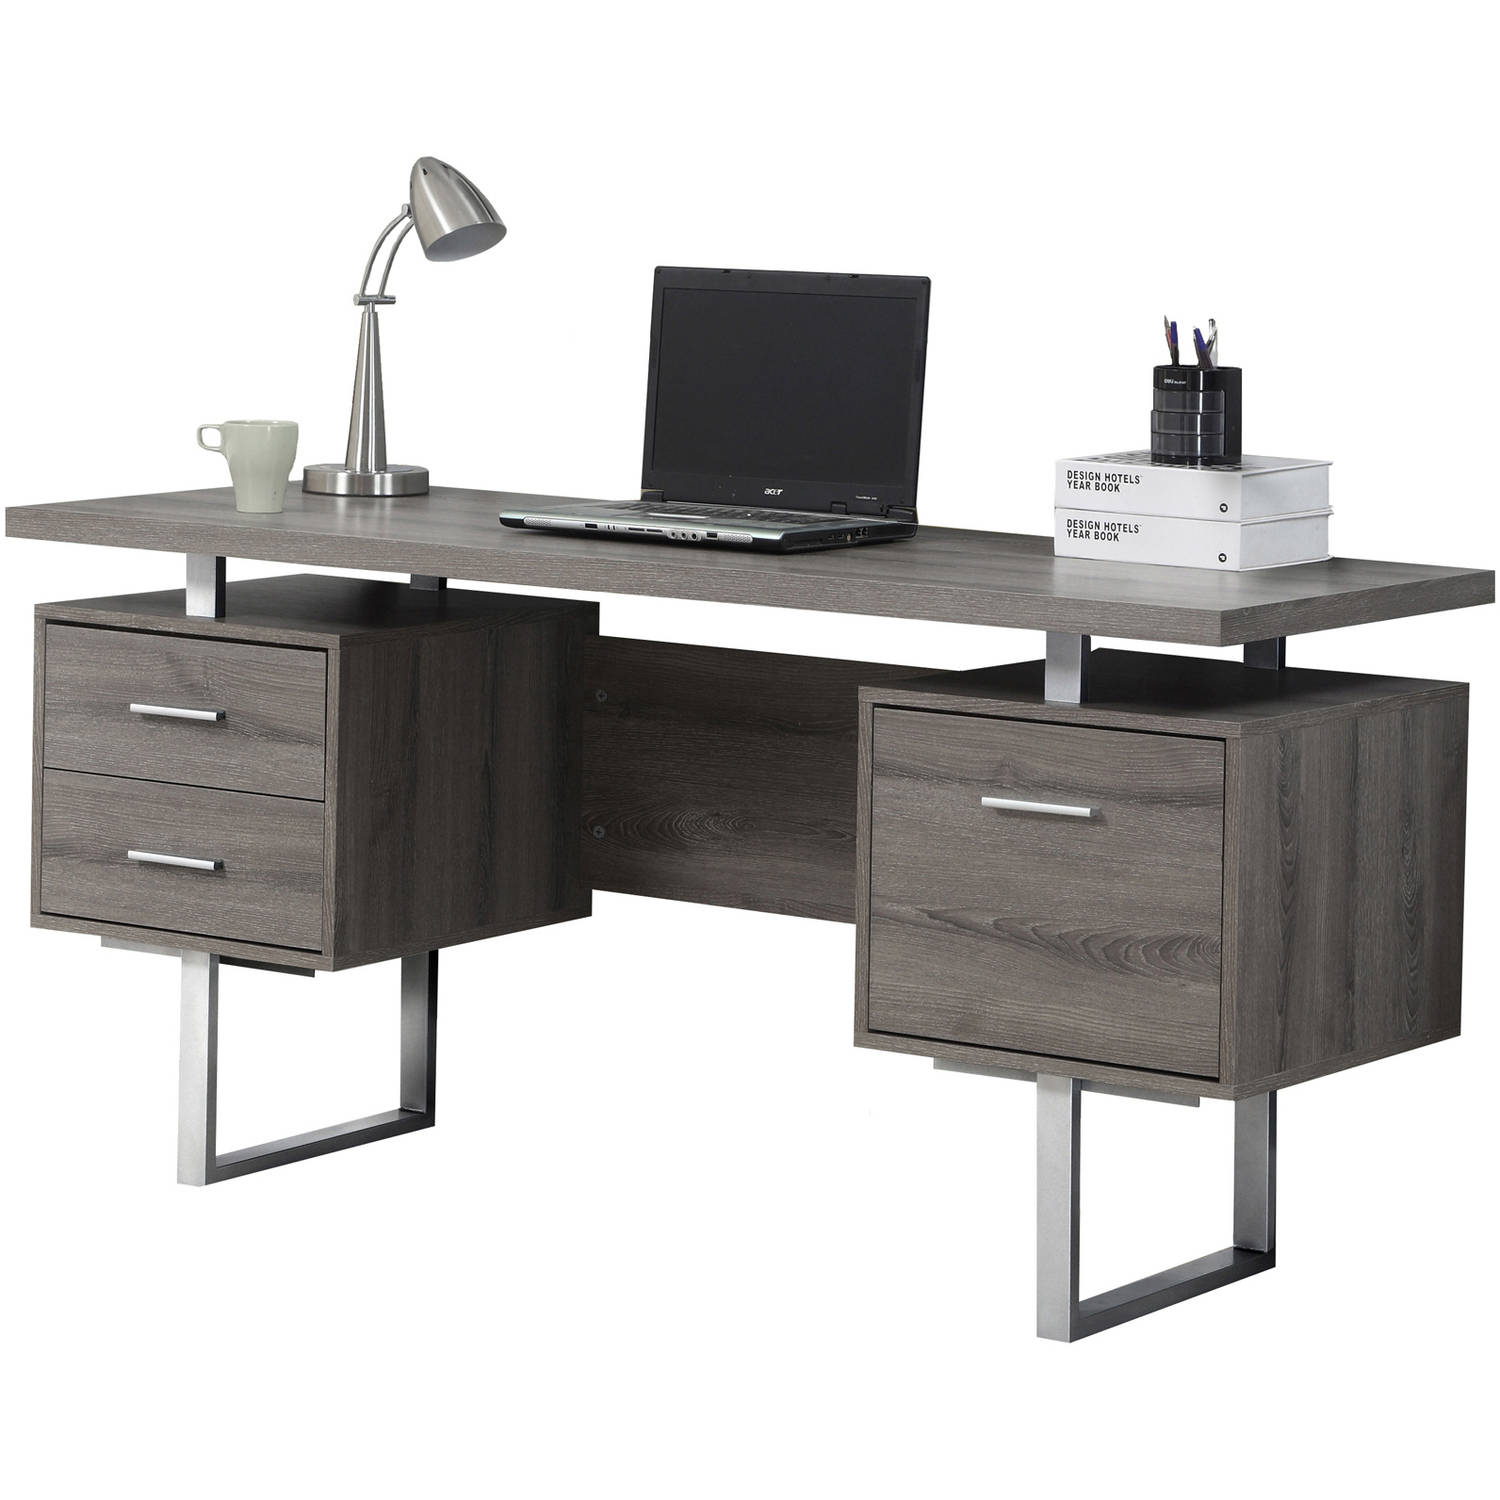 Monarch Computer Desk 60L Dark Taupe Silver Metal Walmartcom